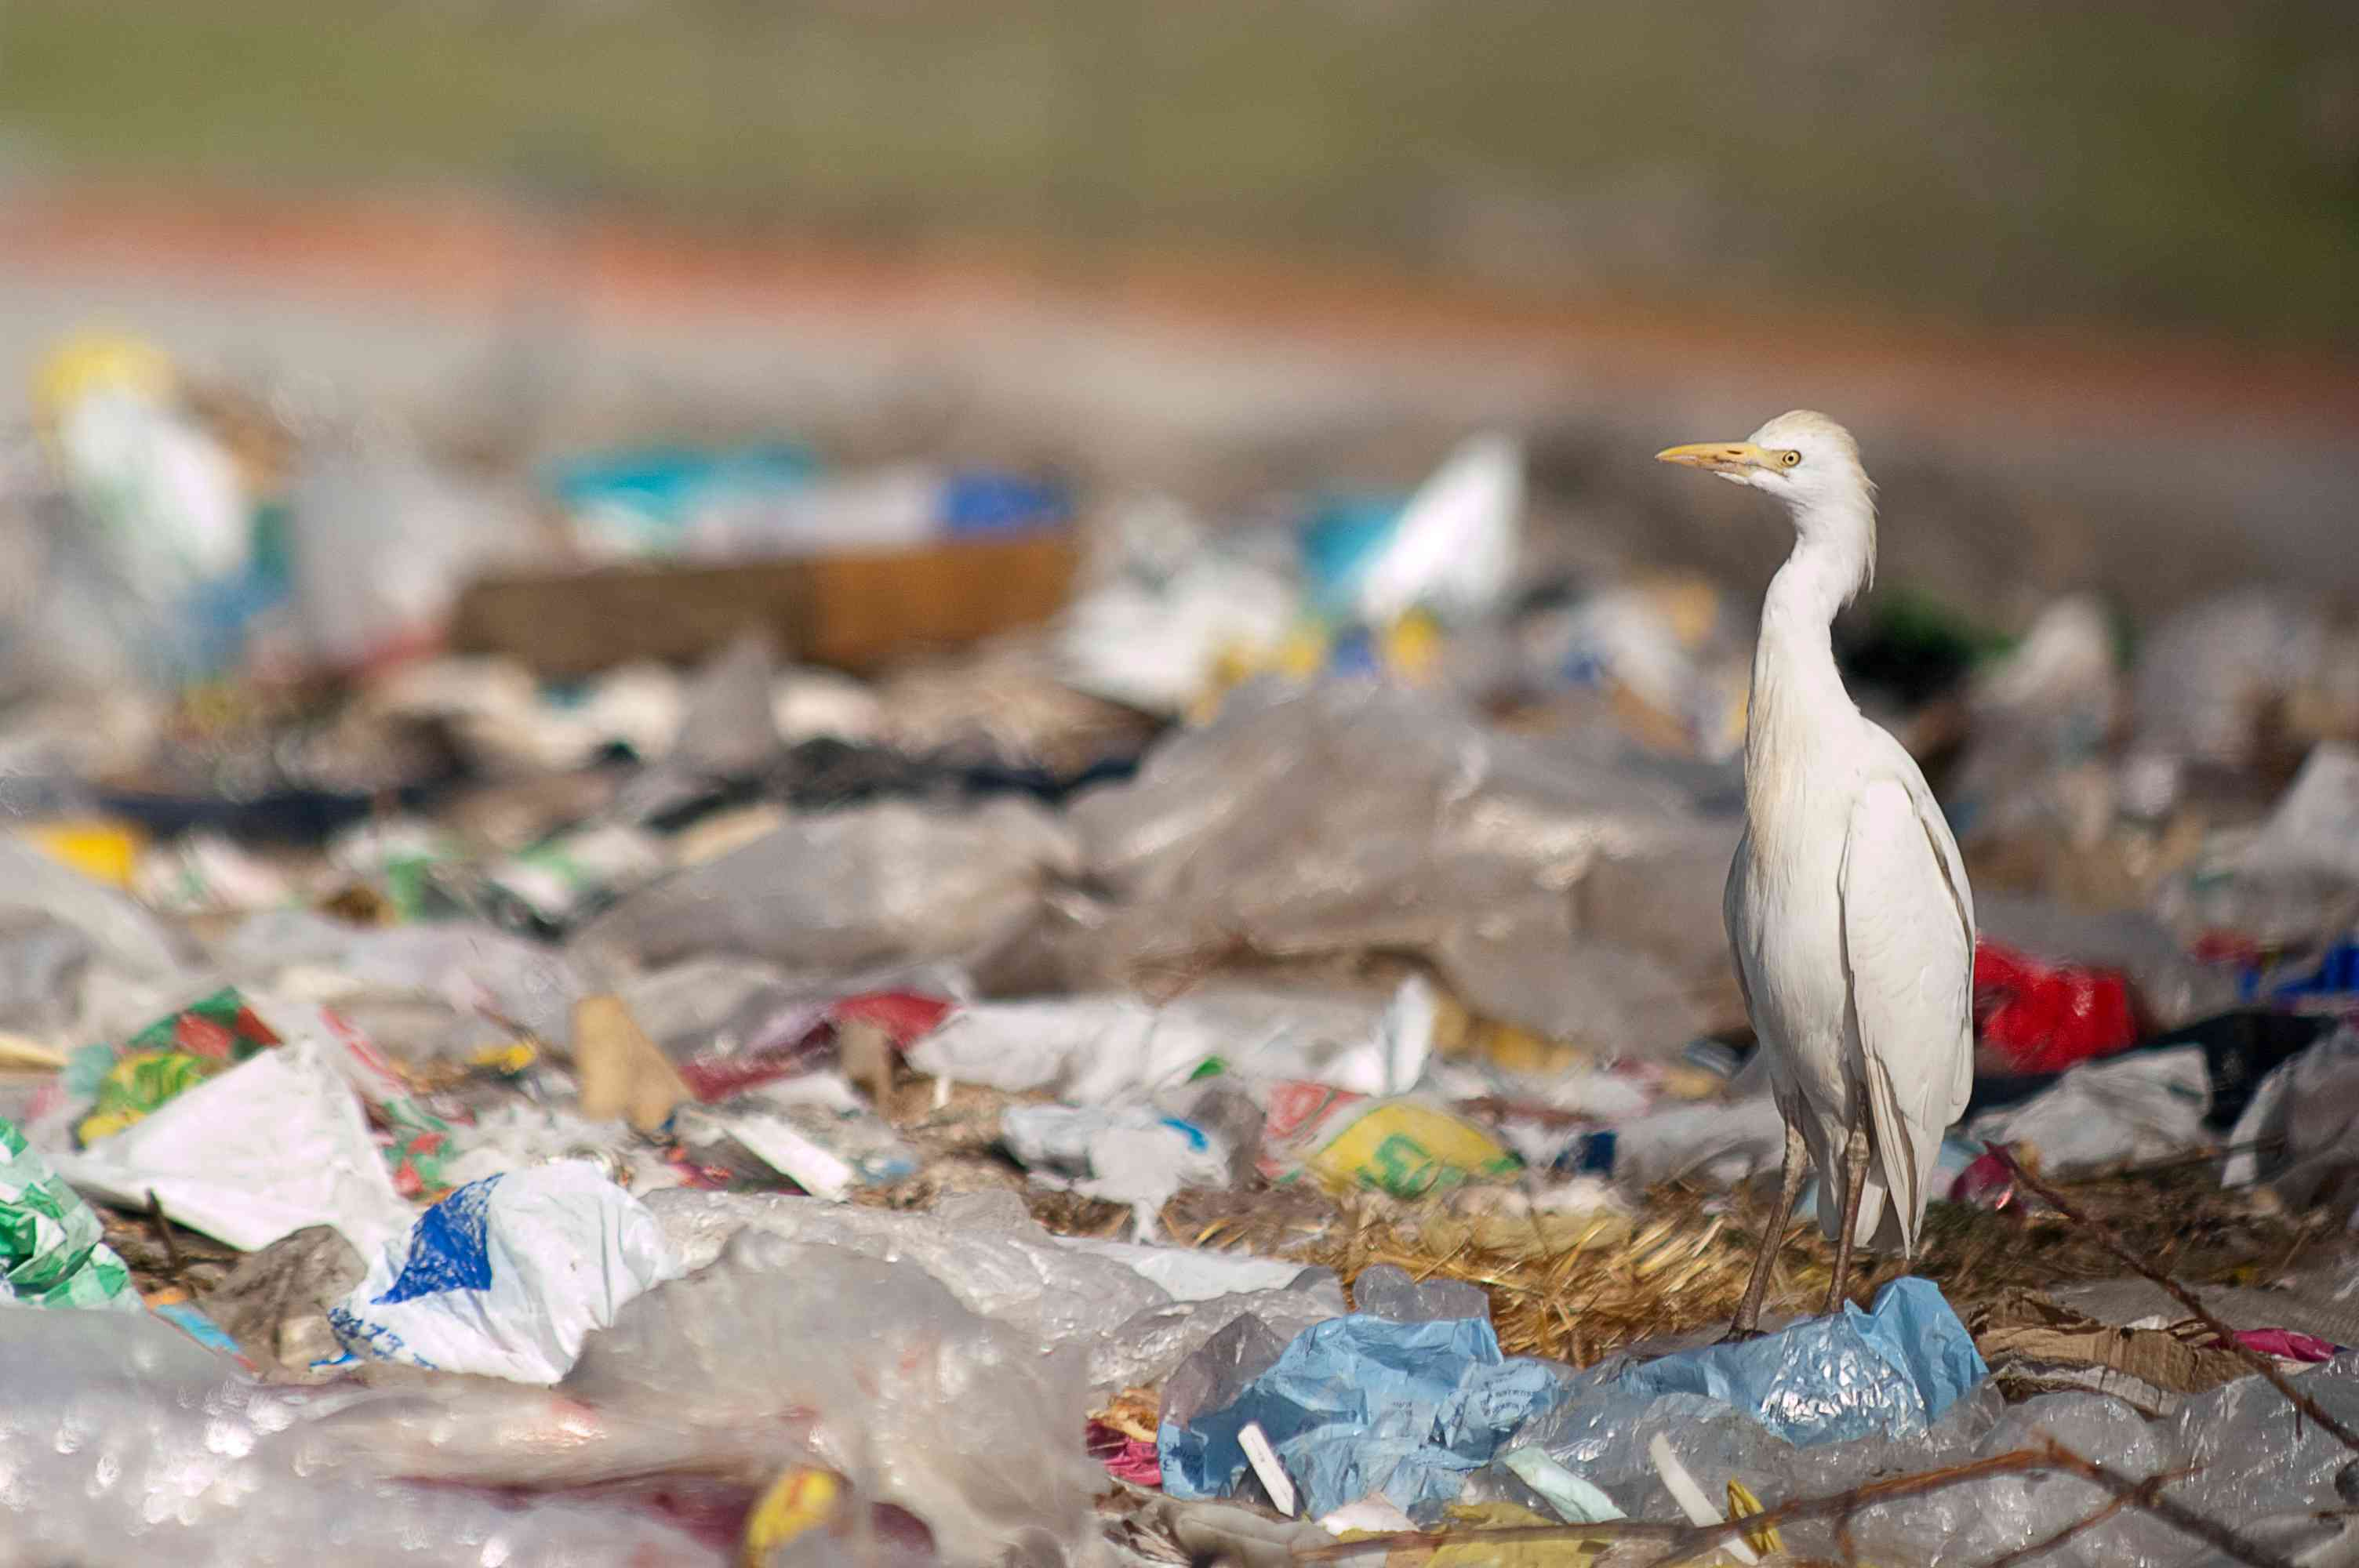 A egret looking for food in a dump.